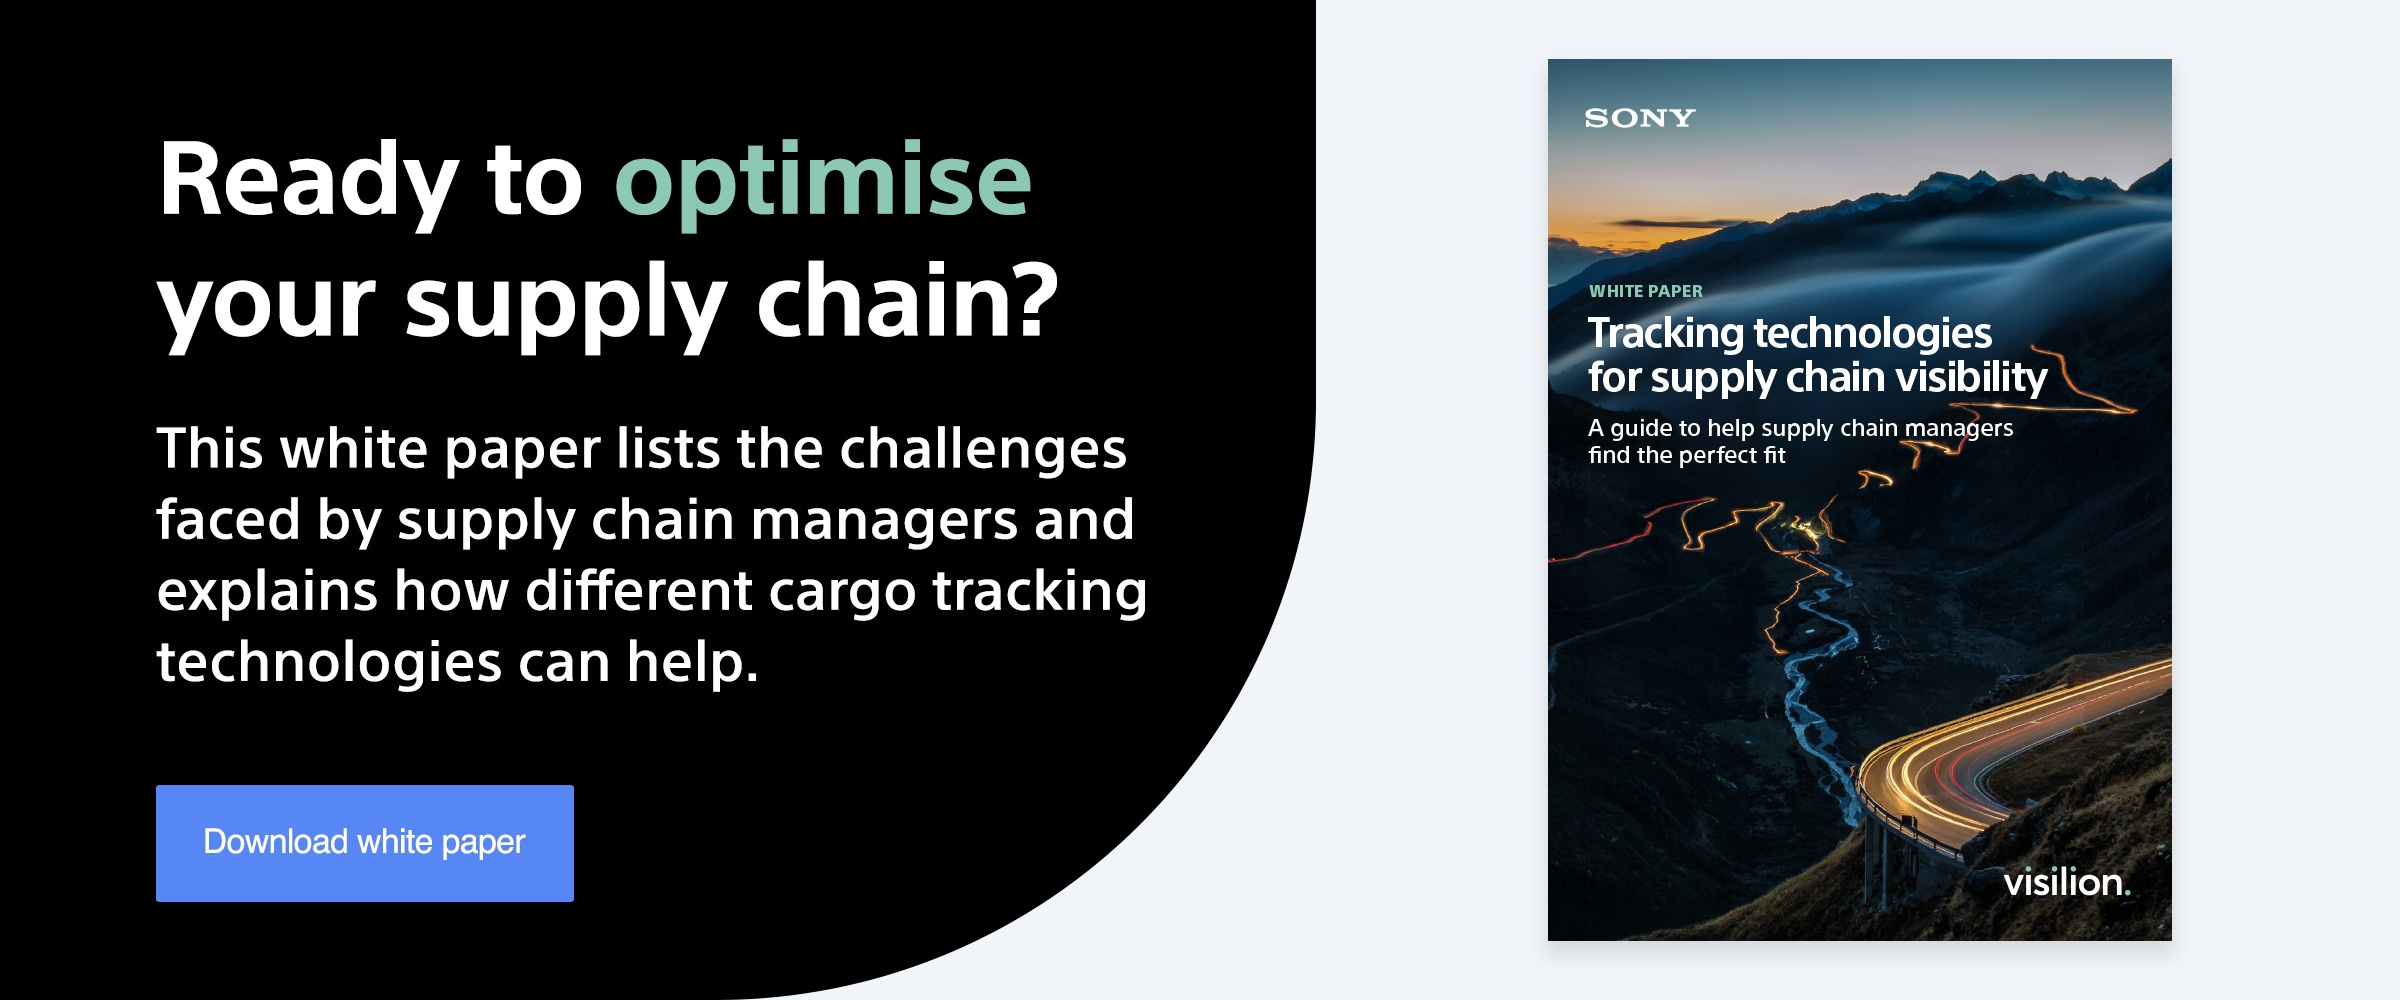 Visilion white paper about tracking technologies